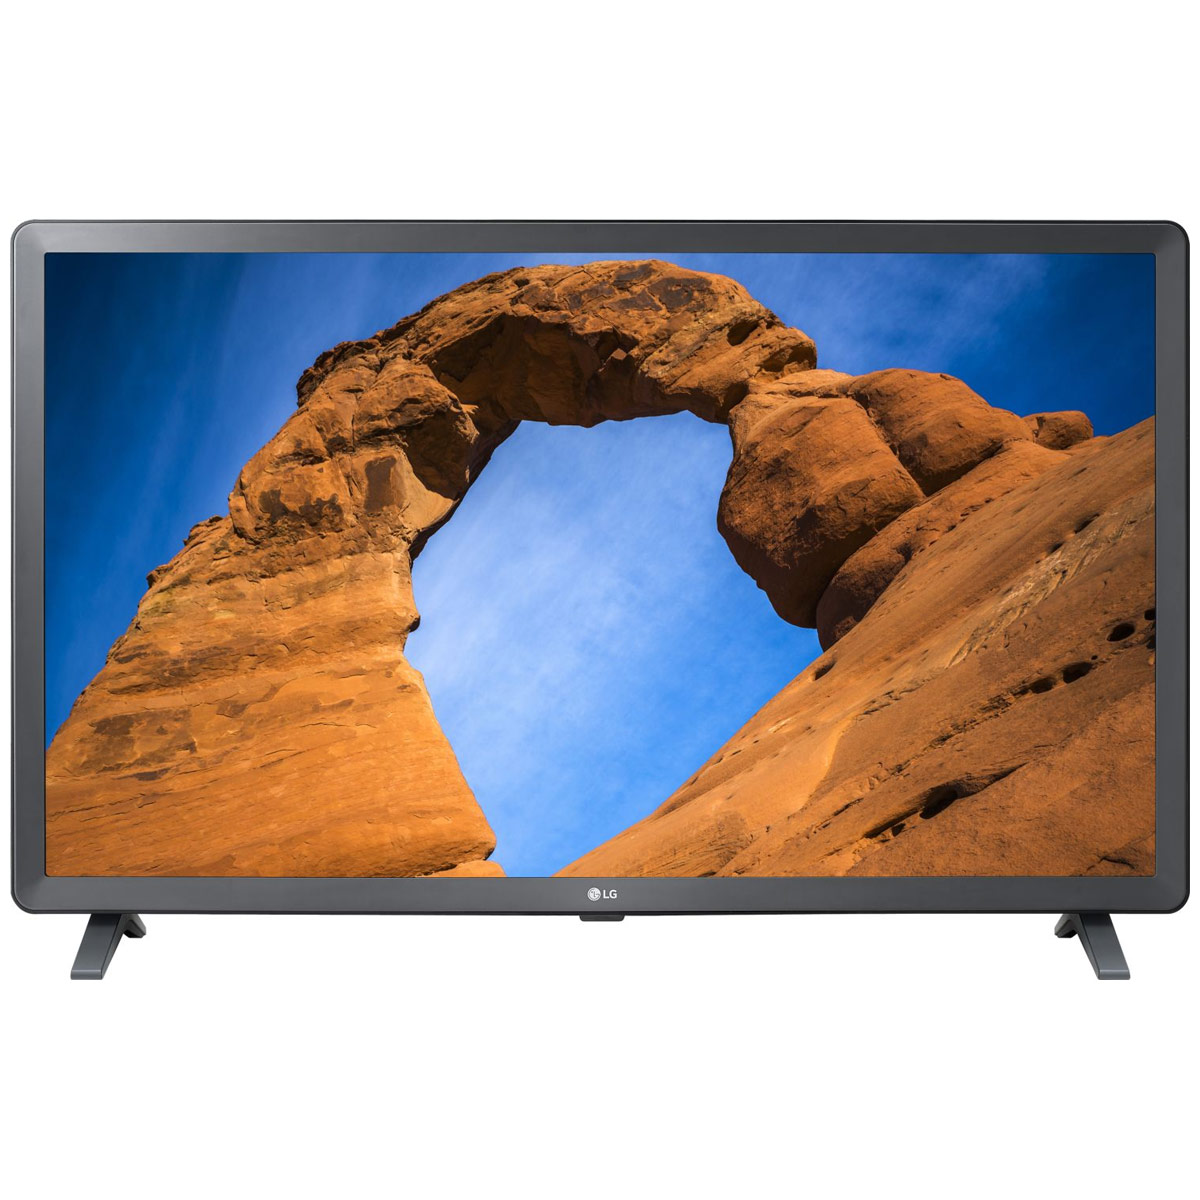 "TV LG 32LK6100 Téléviseur LED Full HD 32"" (81 cm) 16/9 - 1920 x 1080 pixels - HDTV 1080p - HDR - Wi-Fi - Bluetooth - 50 Hz"